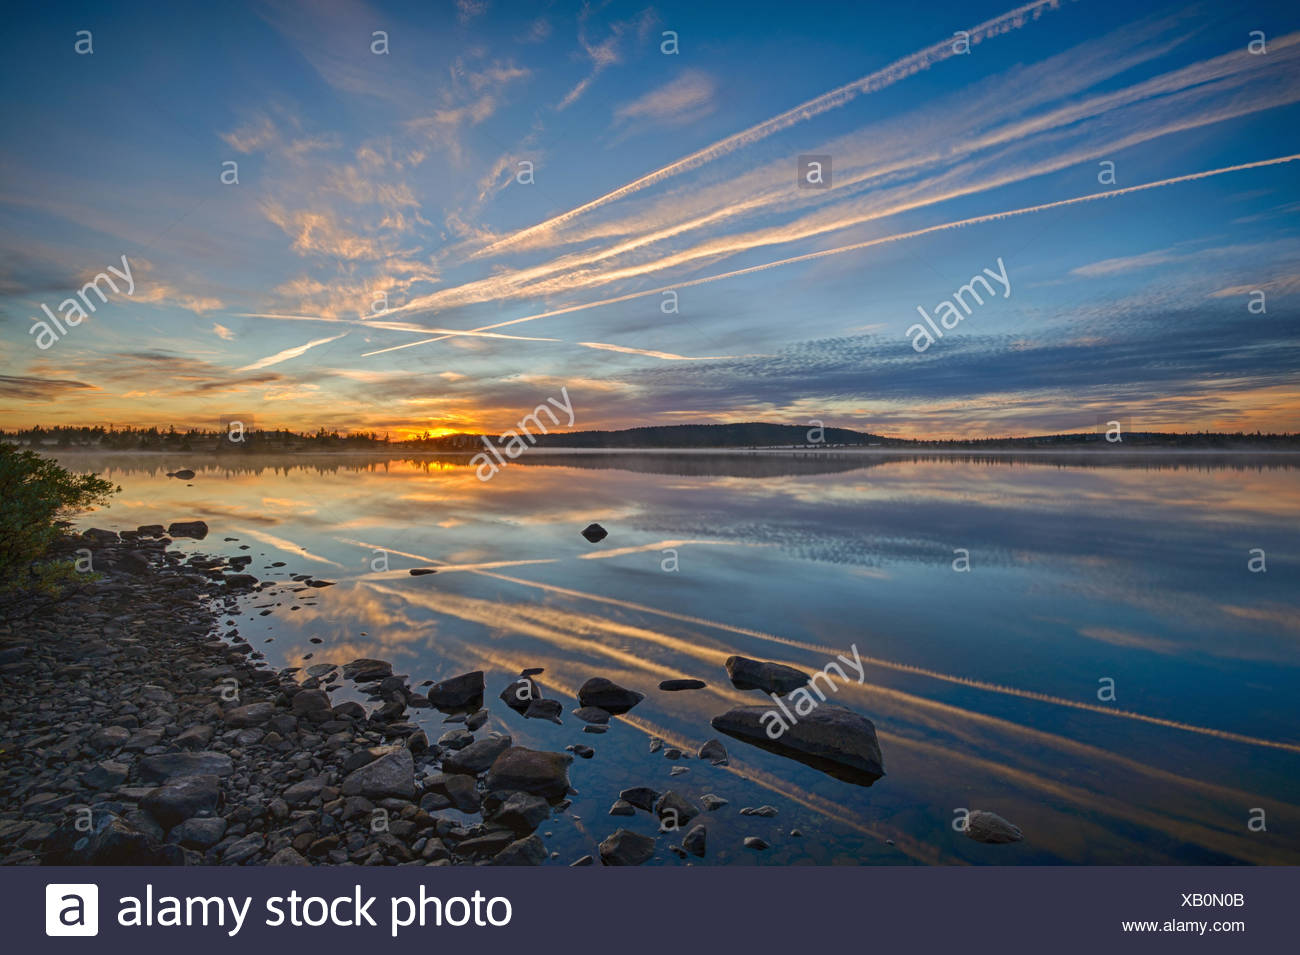 Vapor trails on sky at sunset - Stock Image